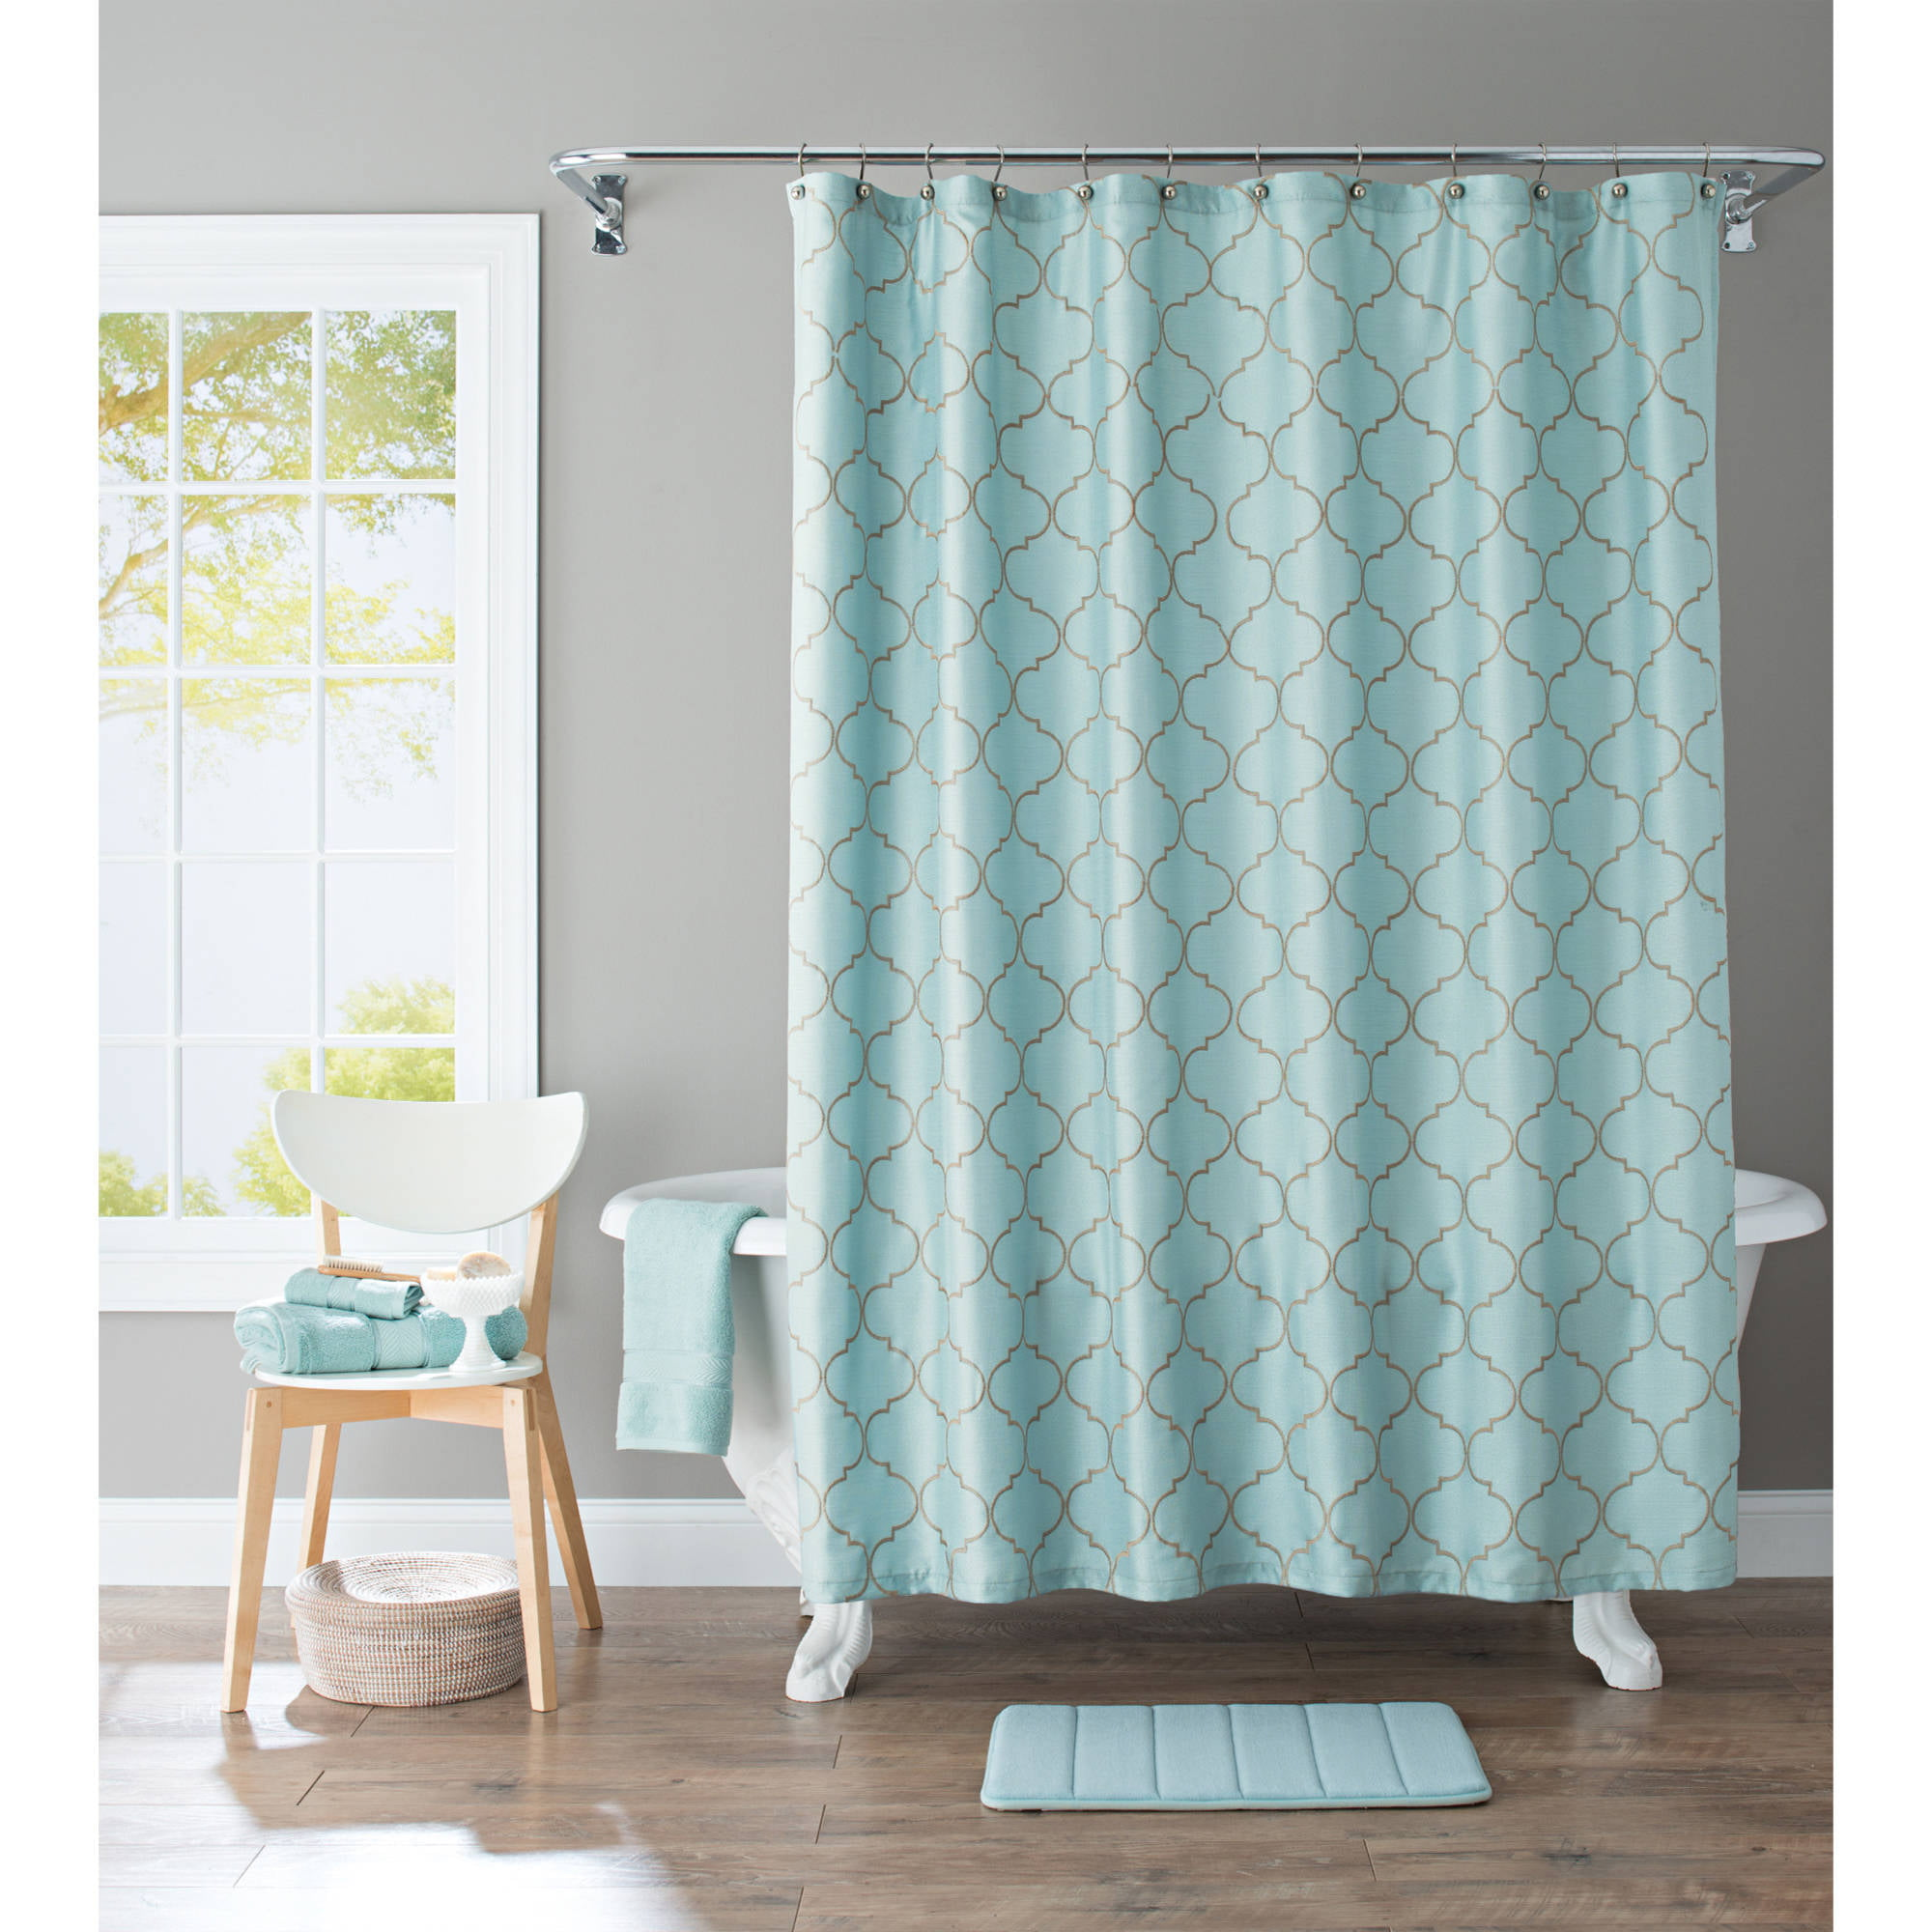 Aqua Chevron Shower Curtain - Better homes and gardens scalloped trellis embroidered fabric shower curtain